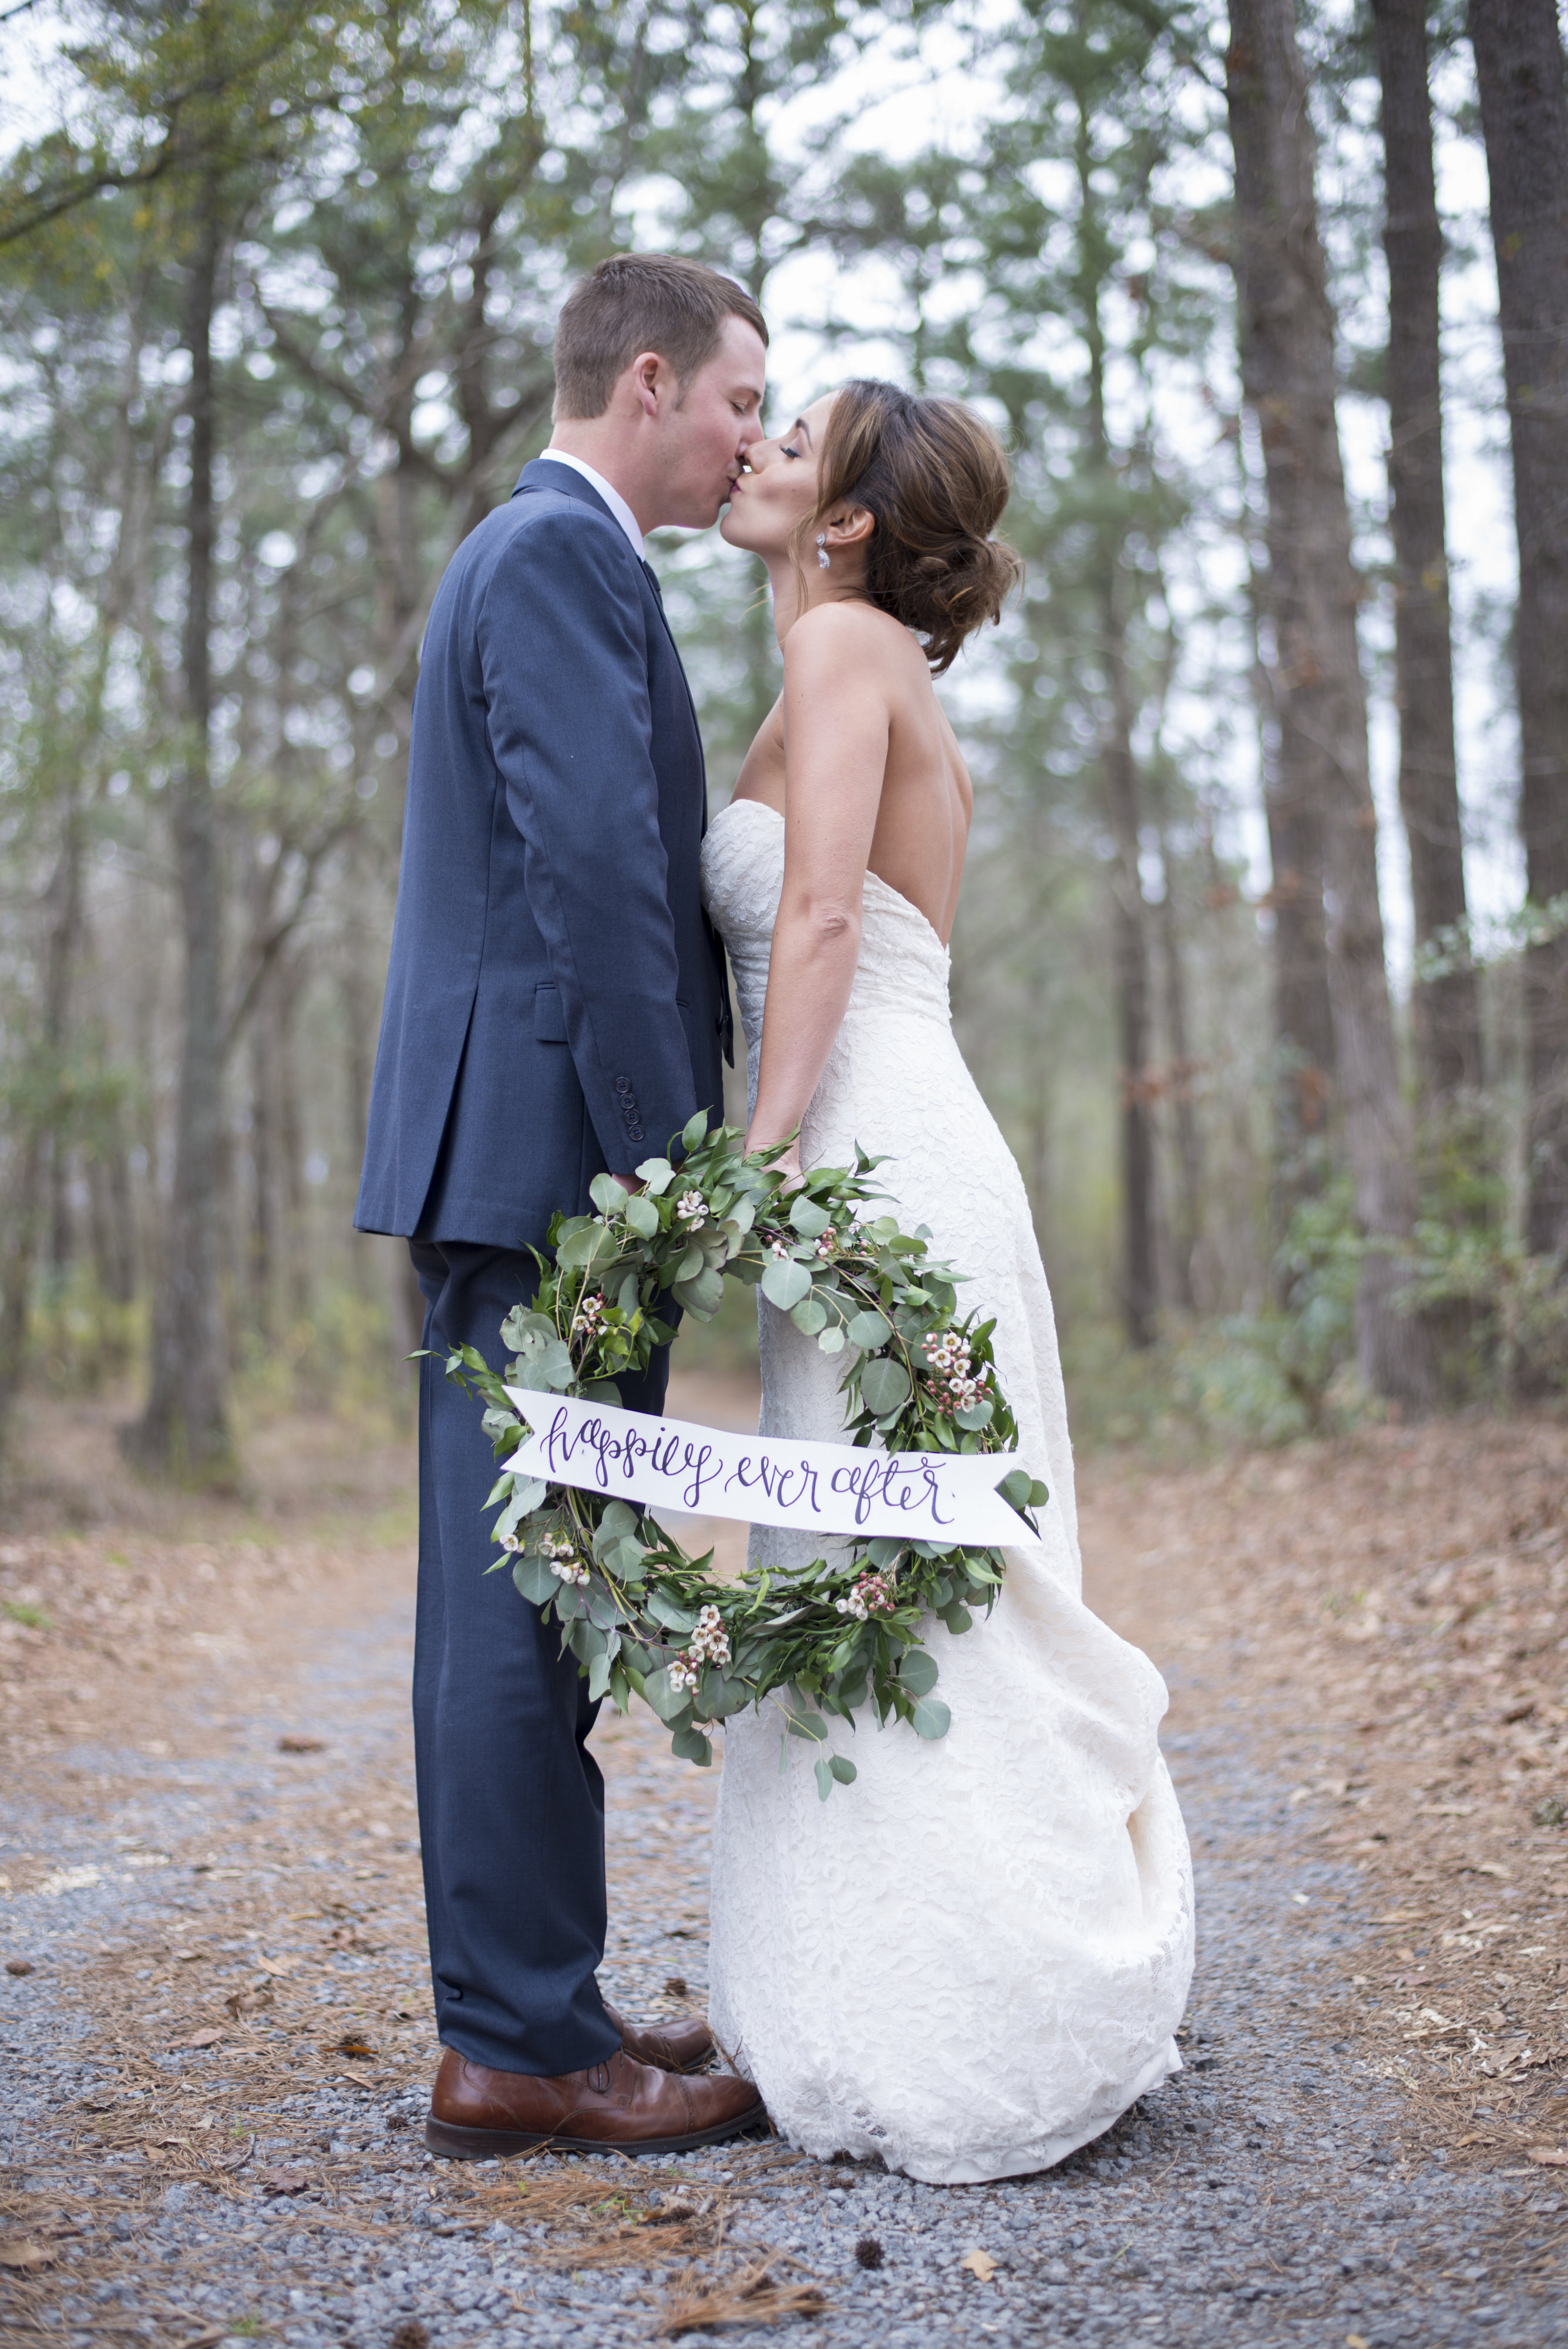 Southern Winter Wedding Inspiration Rustic Wedding Chic